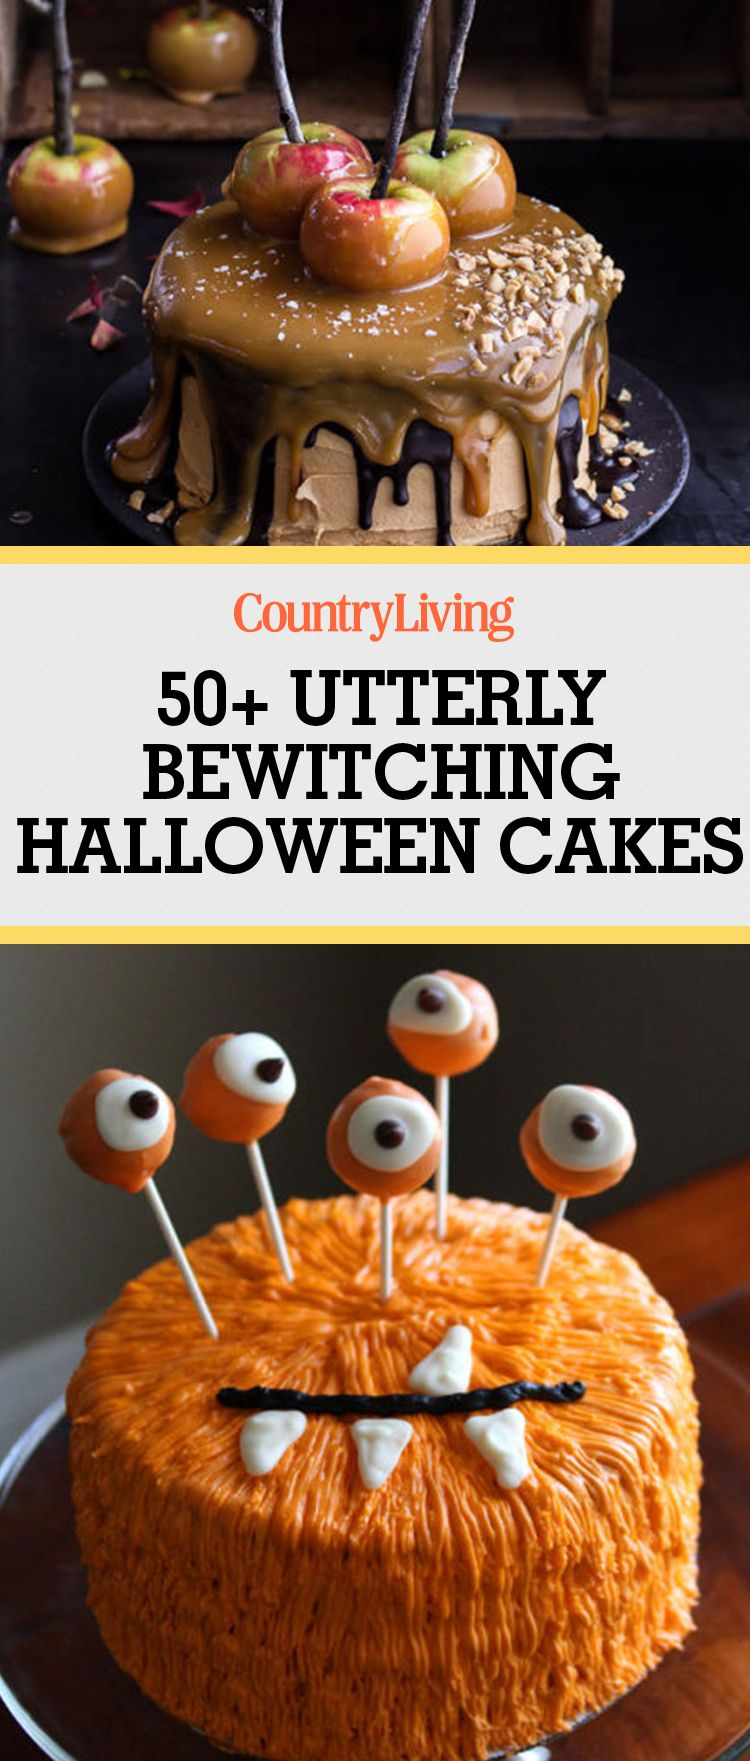 Wickedly Impressive Halloween Cakes That Are Easy To Make With